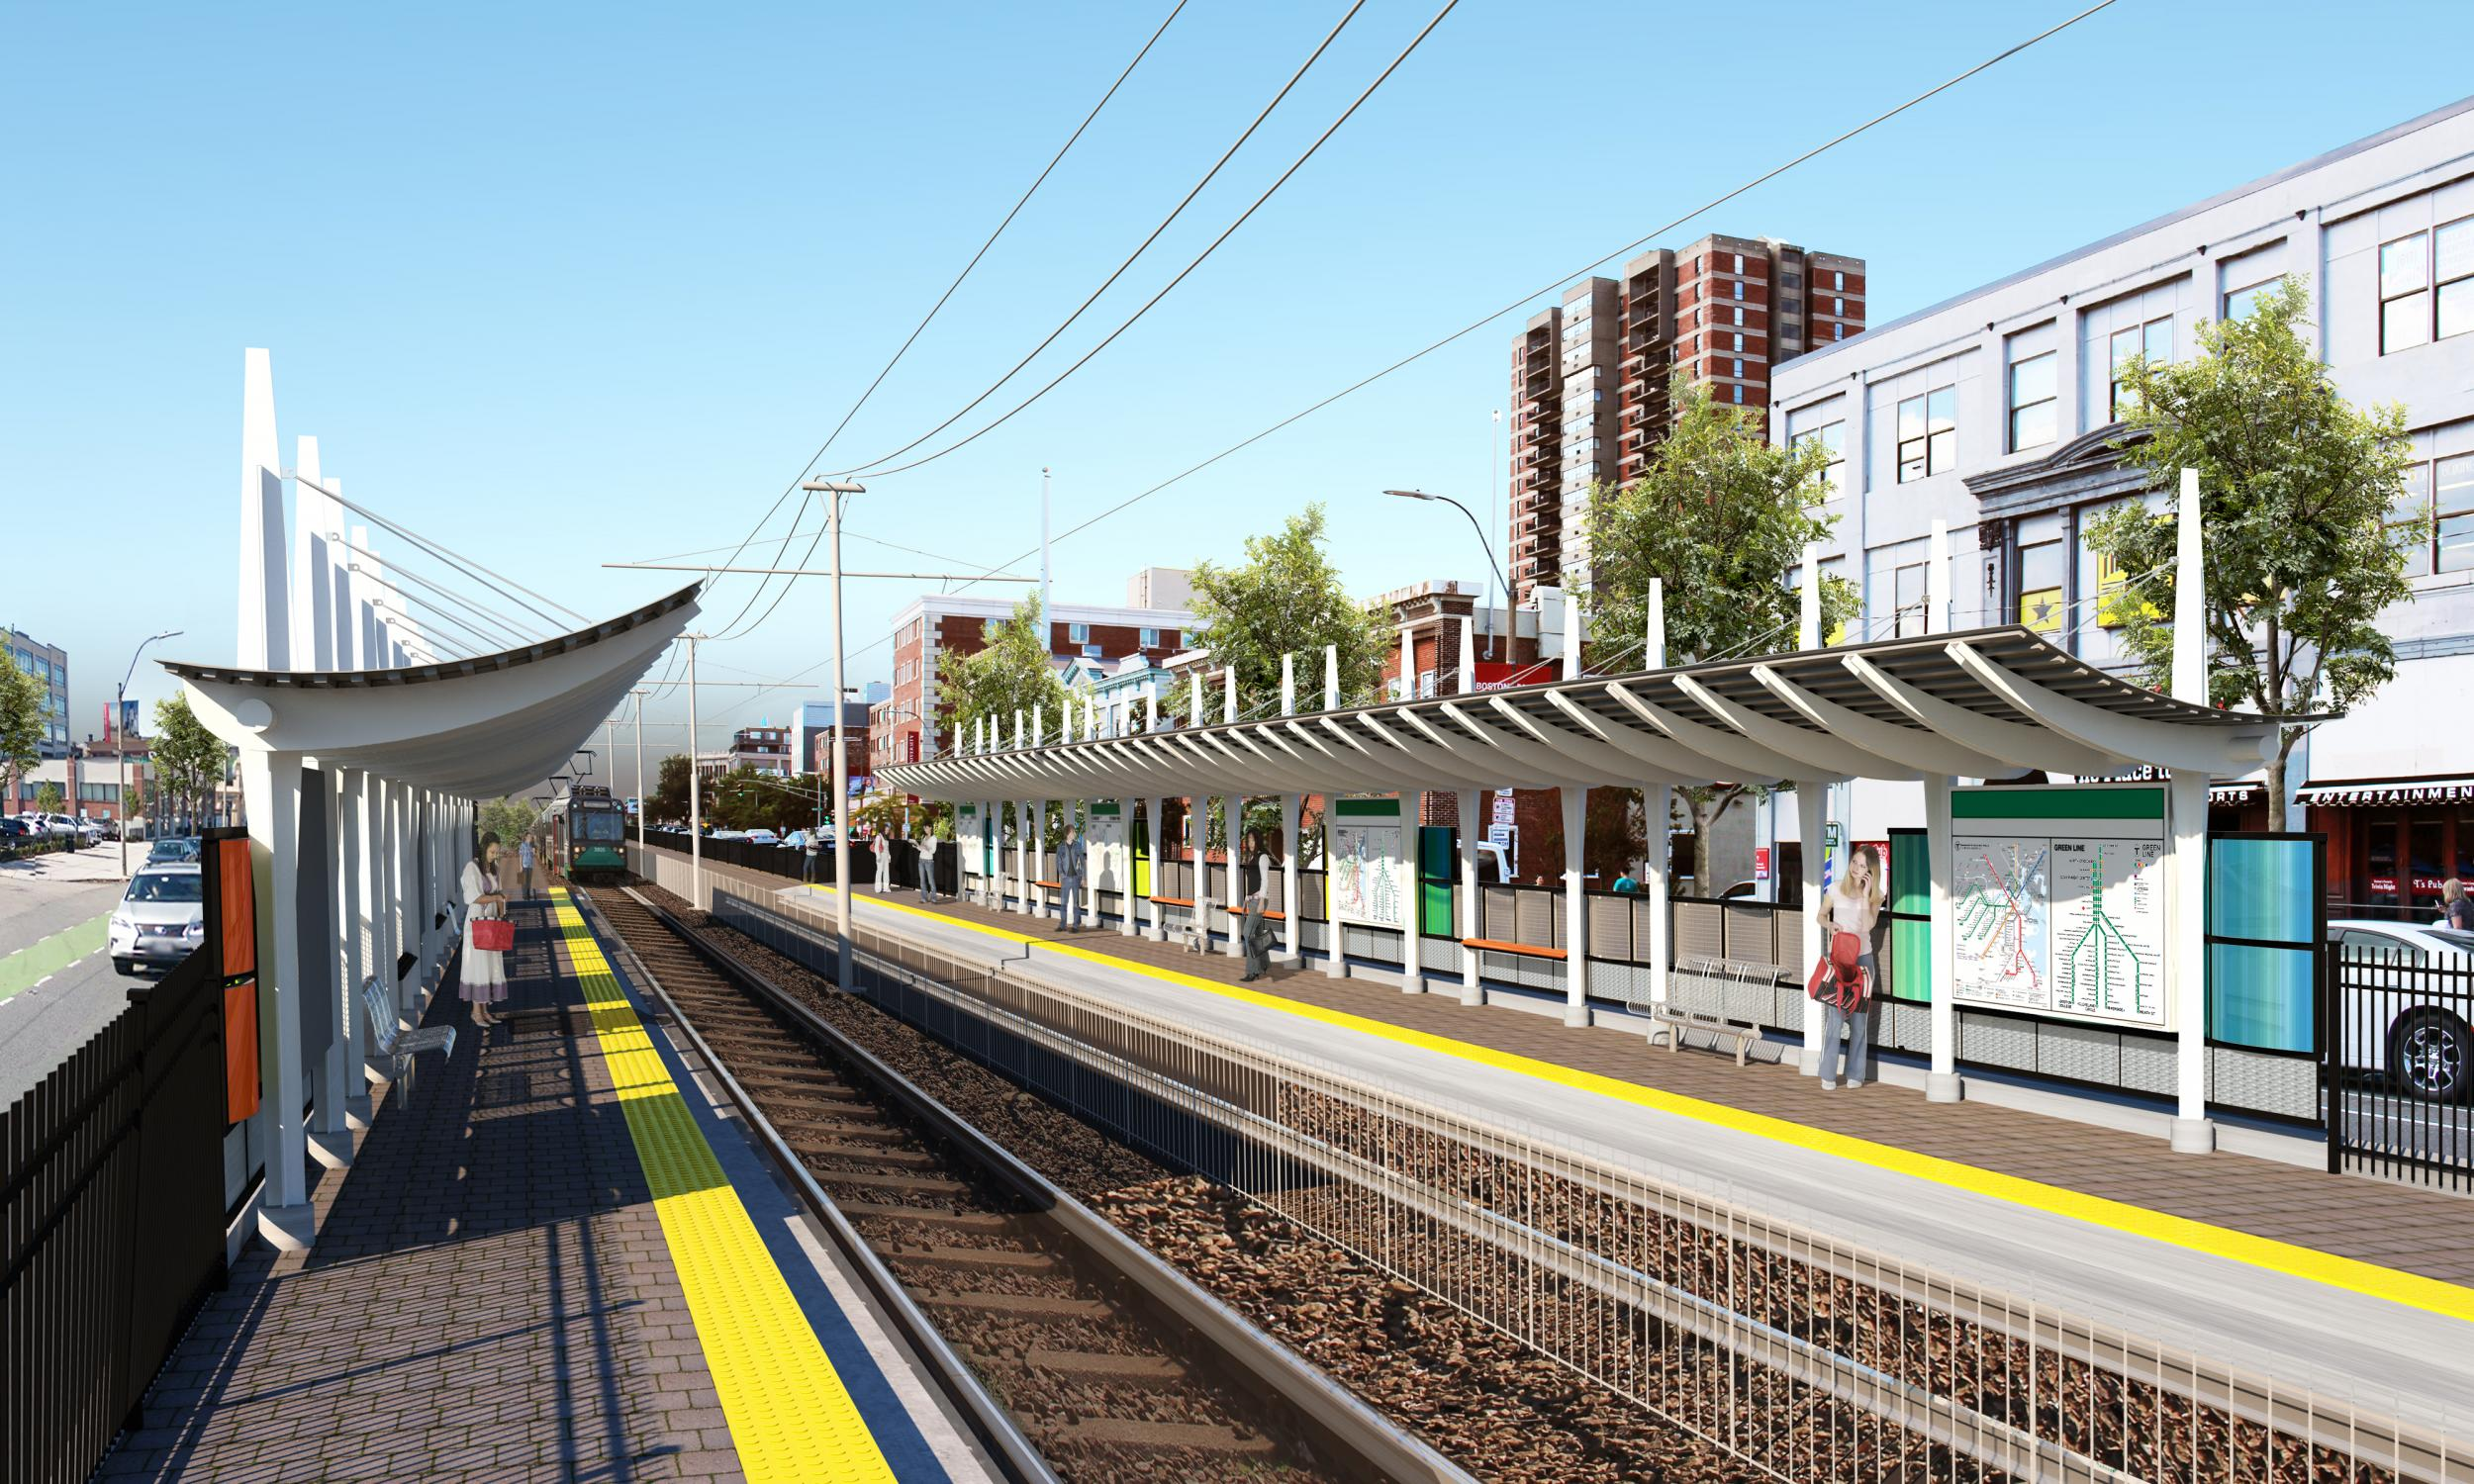 Rendering of the proposed Boston University stop